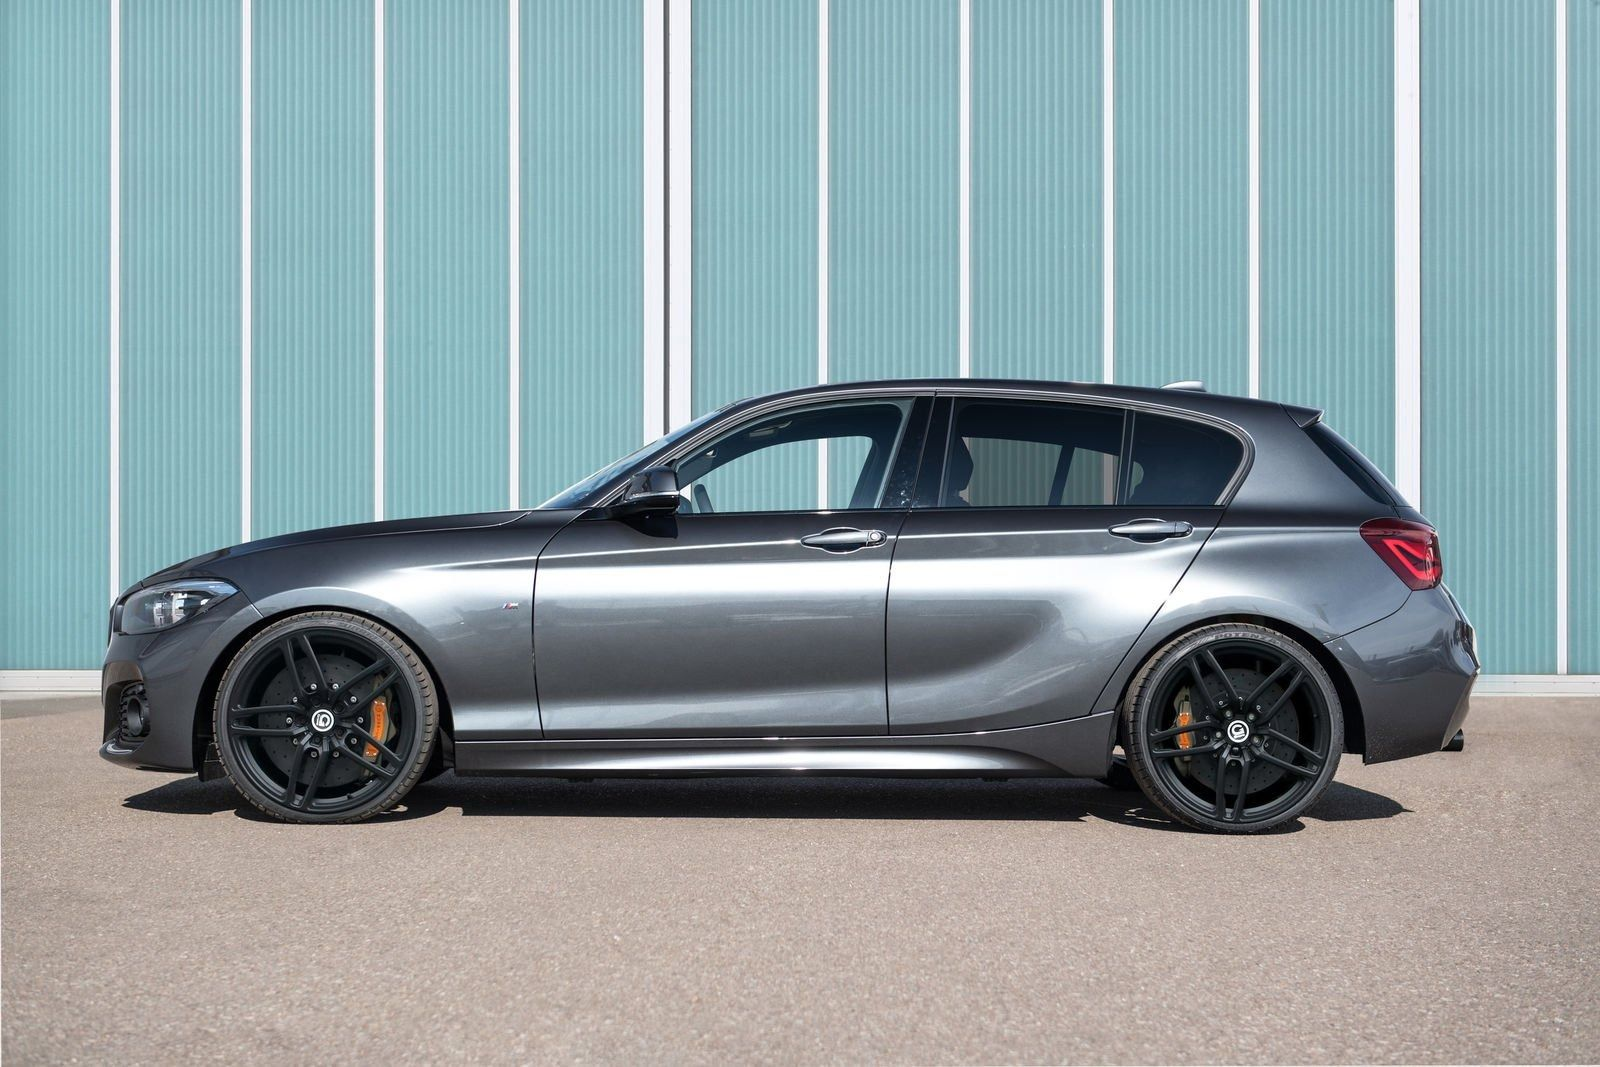 G Power Pushes Bmw M140i Up To 434 Hp 323 Kw Carros Auto Nave